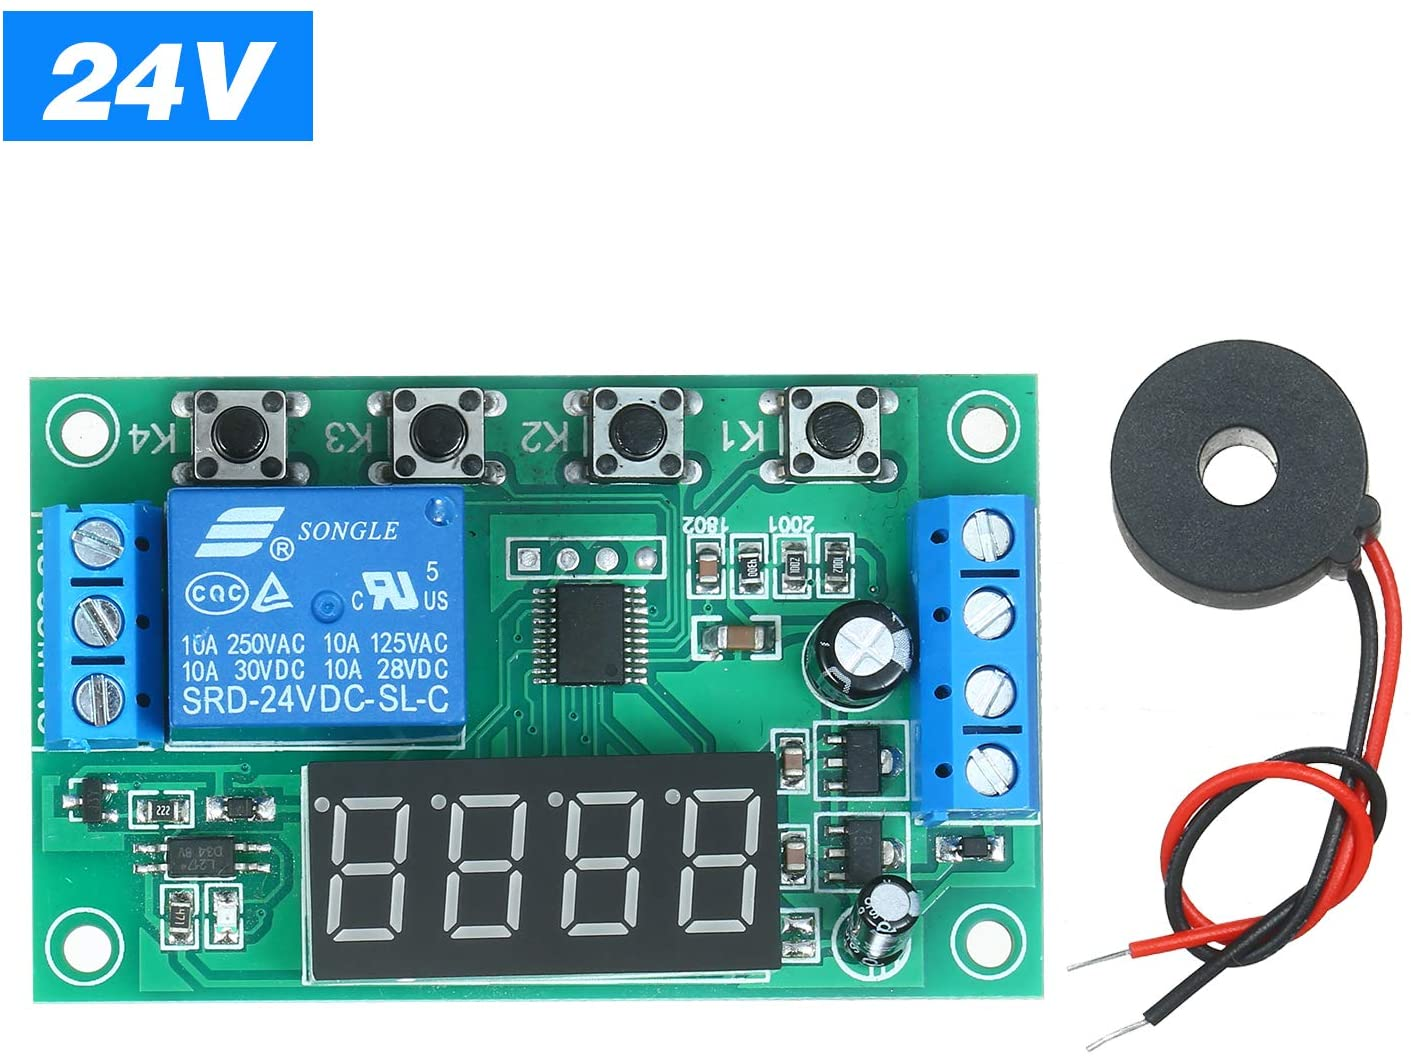 Ajcoflt Current AC Detection Module Current Sensor Electric Current Transducer Current Detection PCB Board Relay ON/OFF Control Module Current Transducer AC Over-current Protection Module Plate w